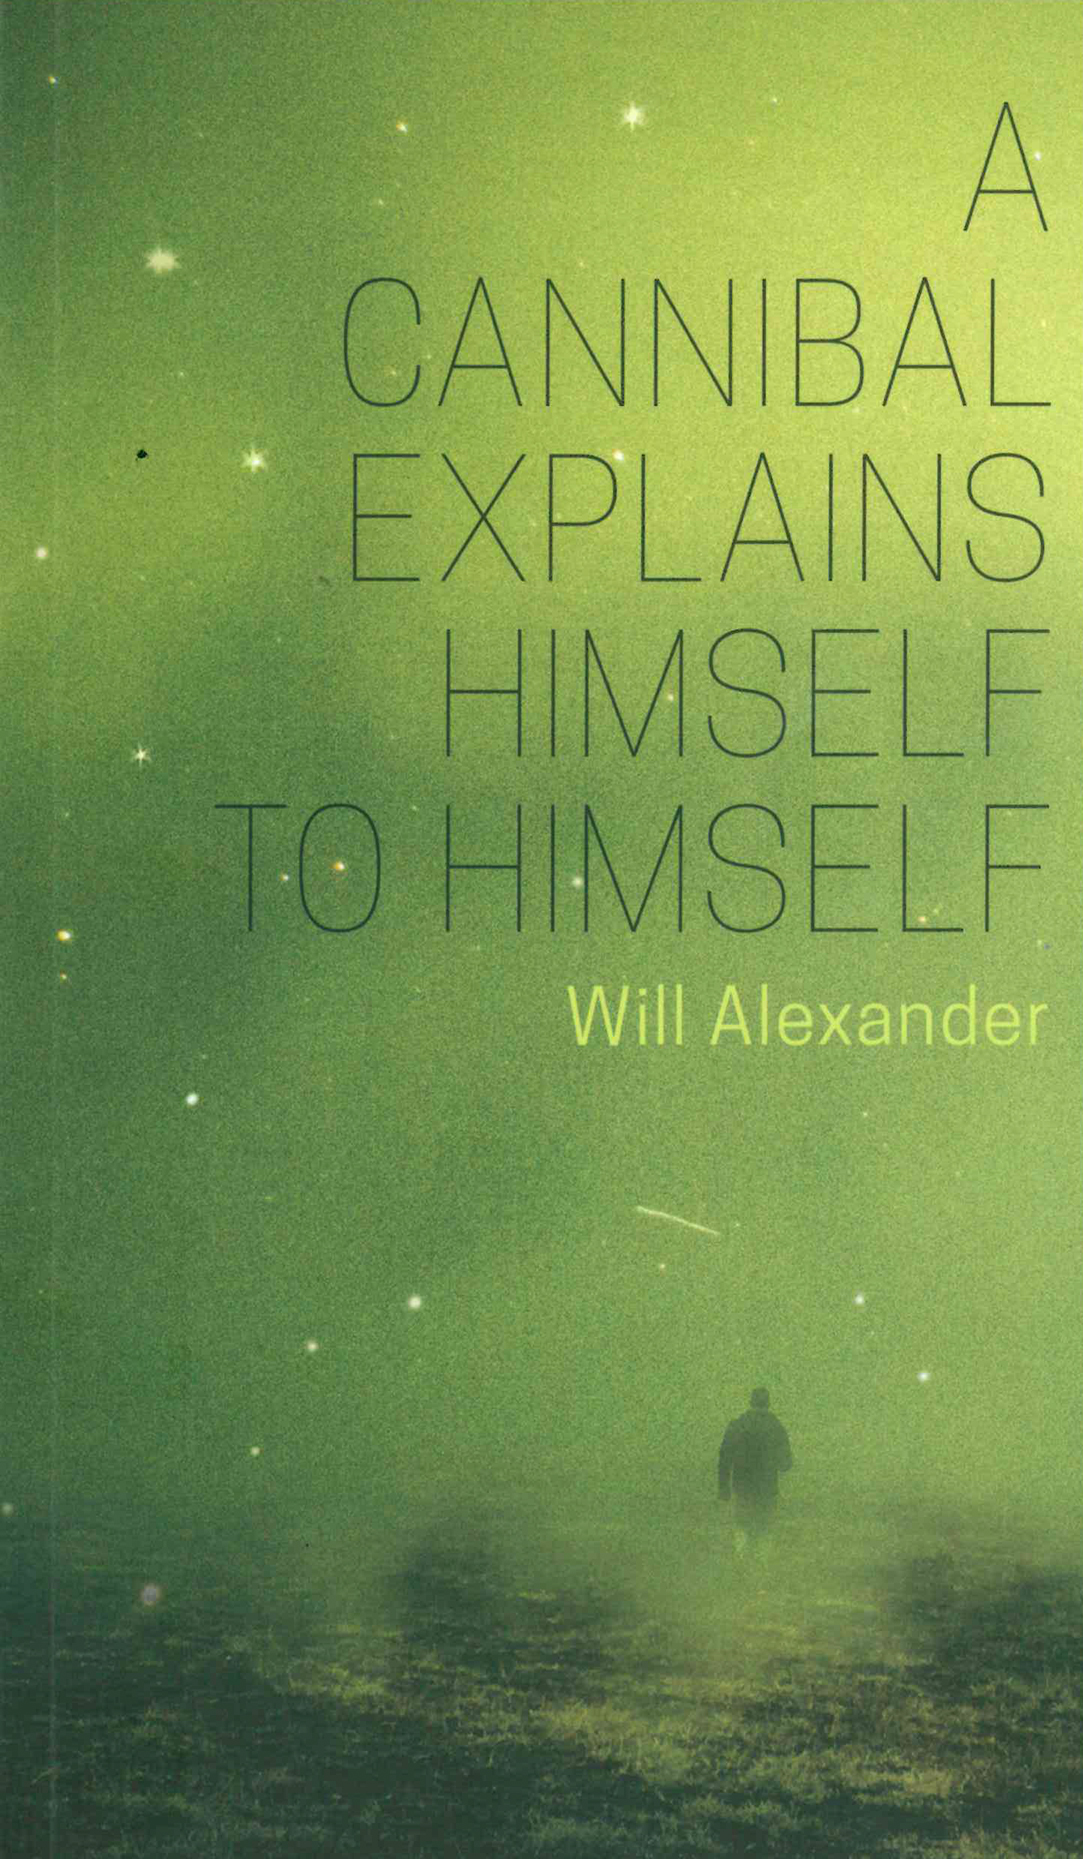 A Cannibal Explains Himself to Himself by Will Alexander | The Elephants, 2019